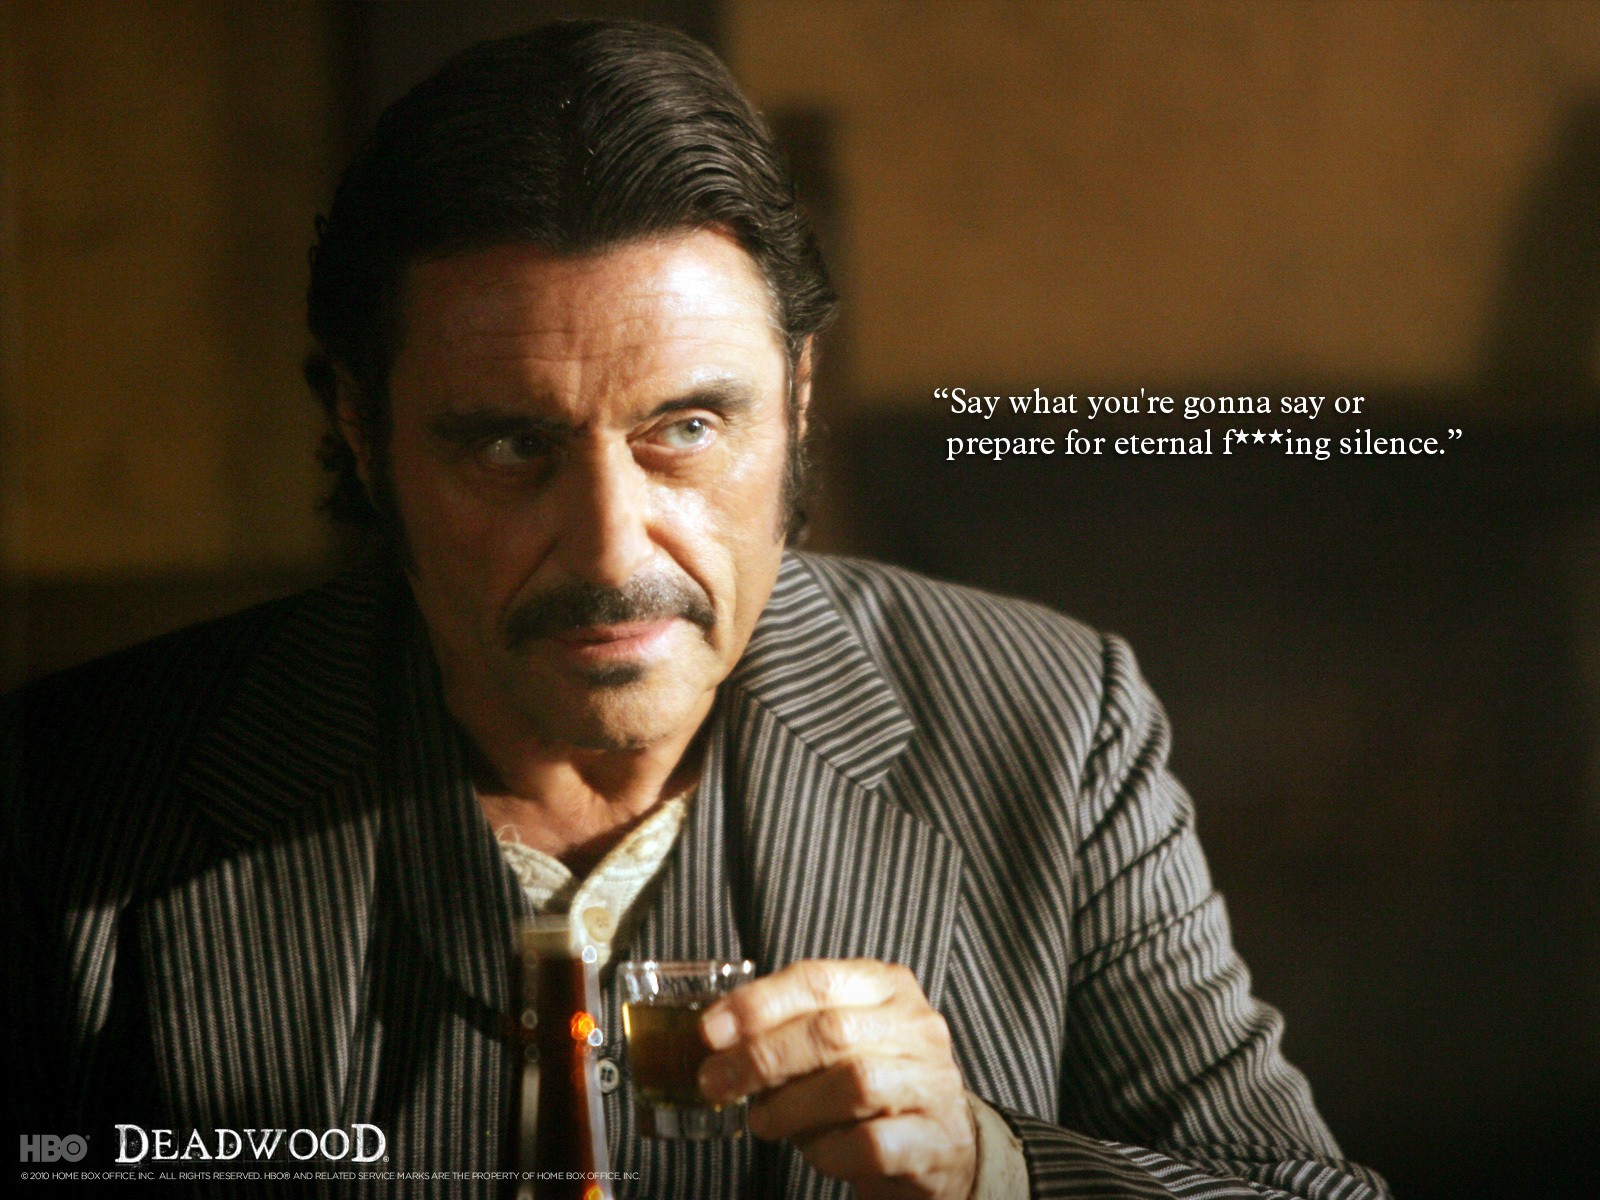 Al-Swearengen-deadwood-18856744-1600-1200.jpg